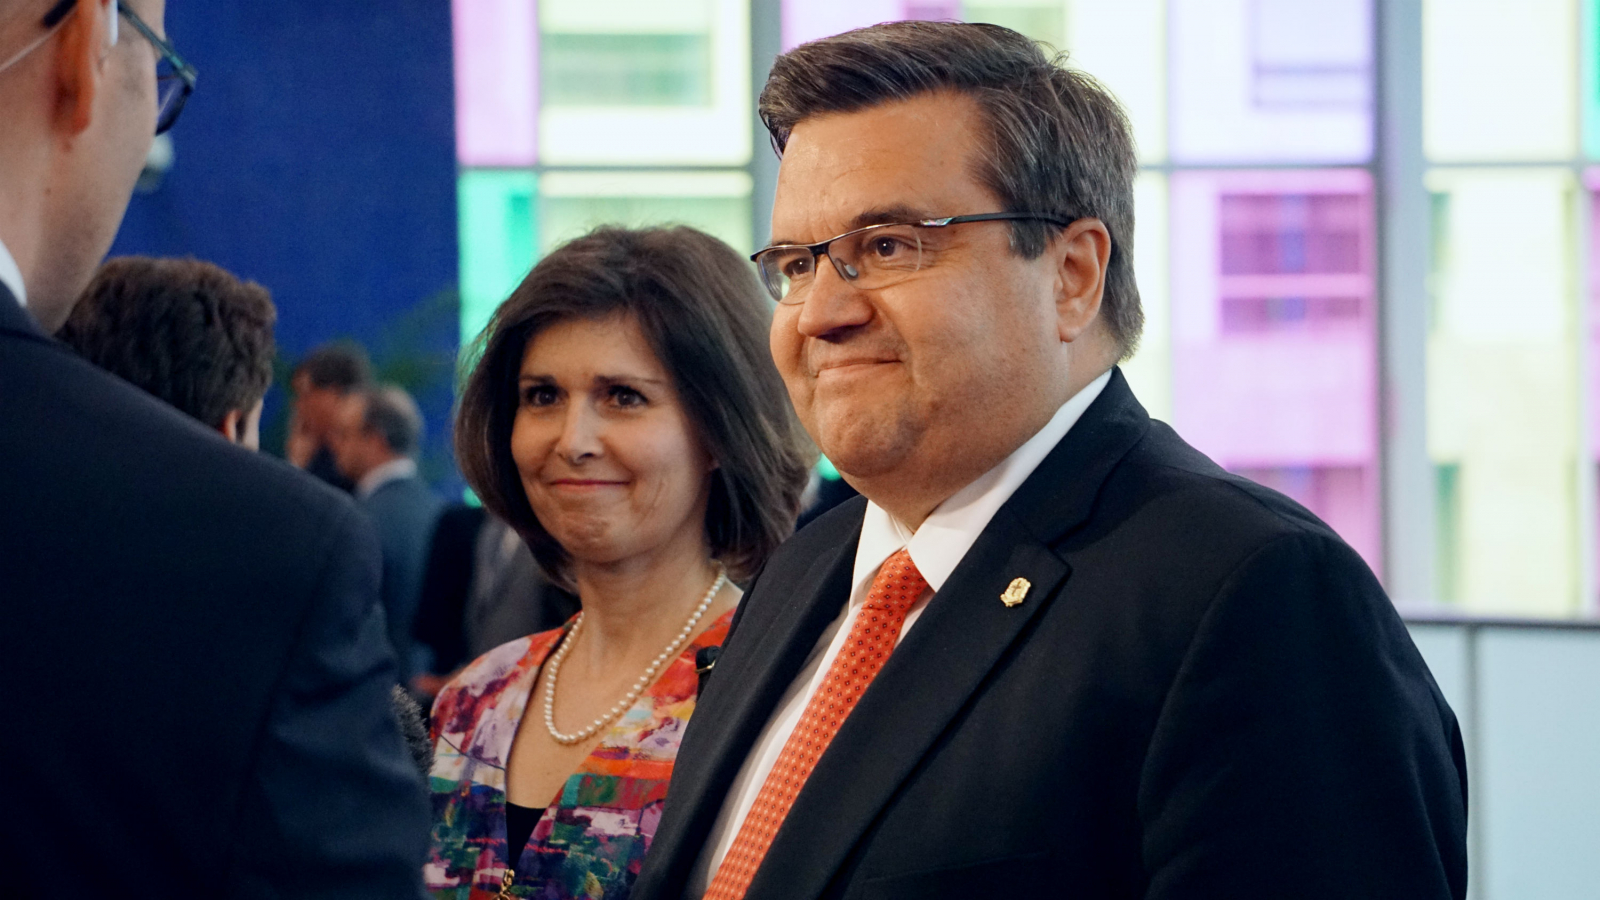 Denis Coderre, Montreal mayor, Barack Obama